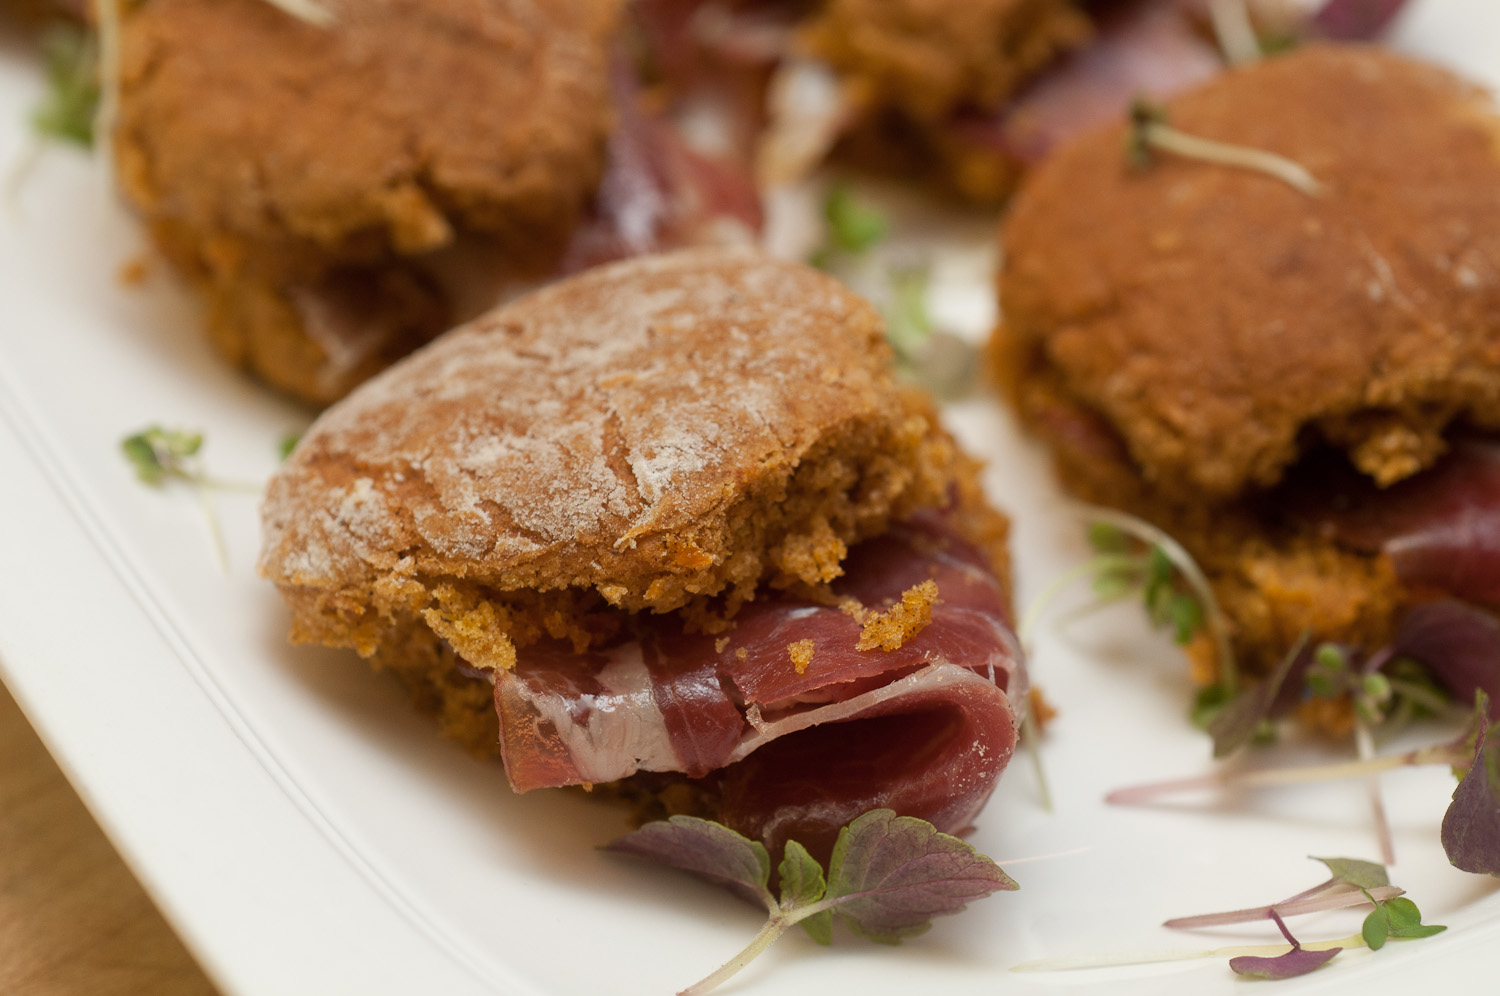 Farmland House-Cured Ham with Sweet Potato Biscuits and Kentucky Honey